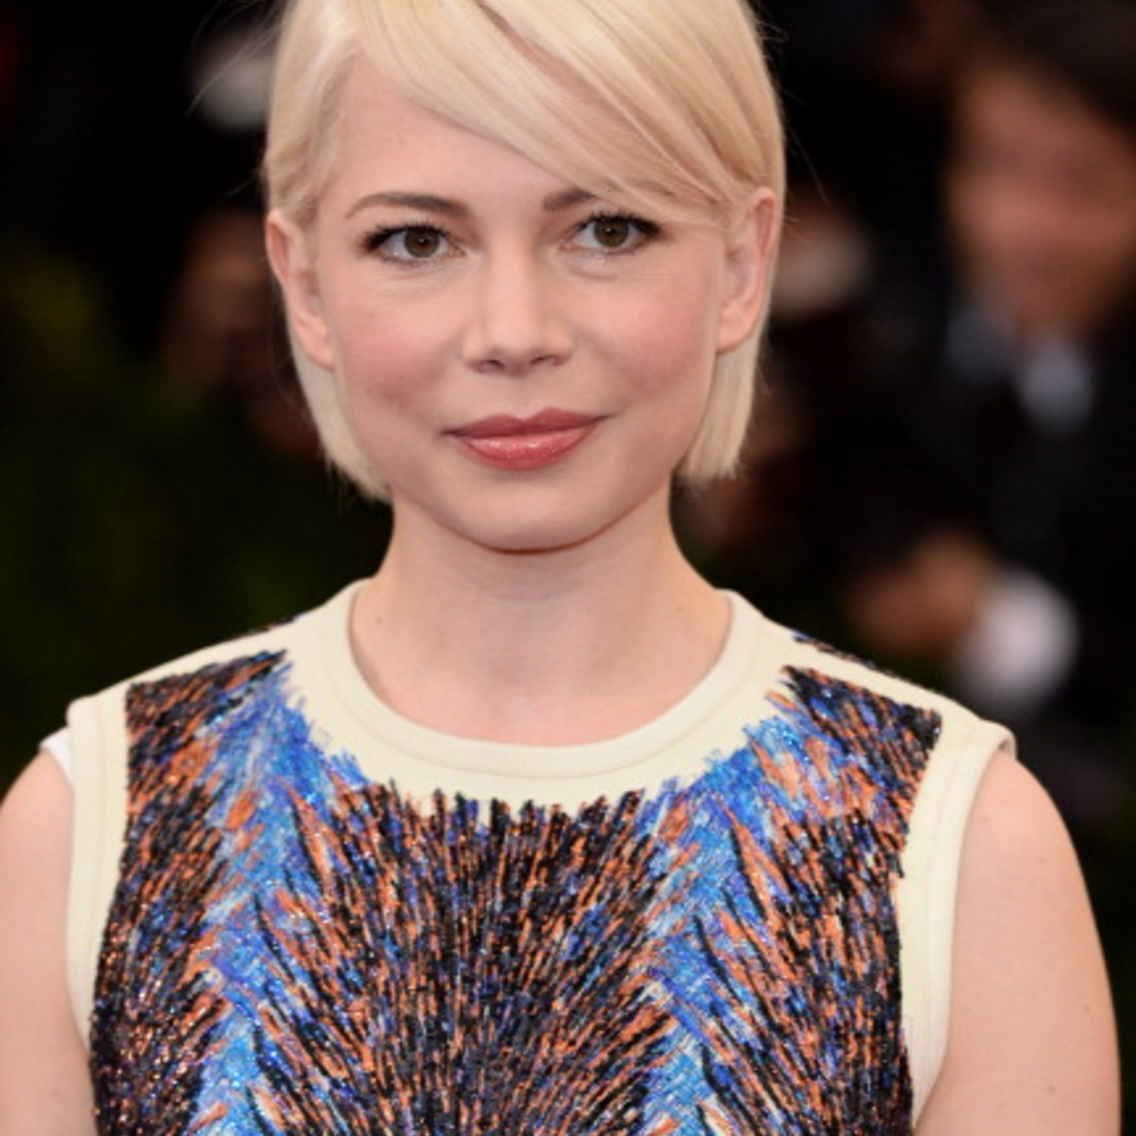 Michelle Williams Models for Louis Vuitton, Betsey Johnson Joins 'Dancing With the Stars'. And Kim Kardashian busts a seam.